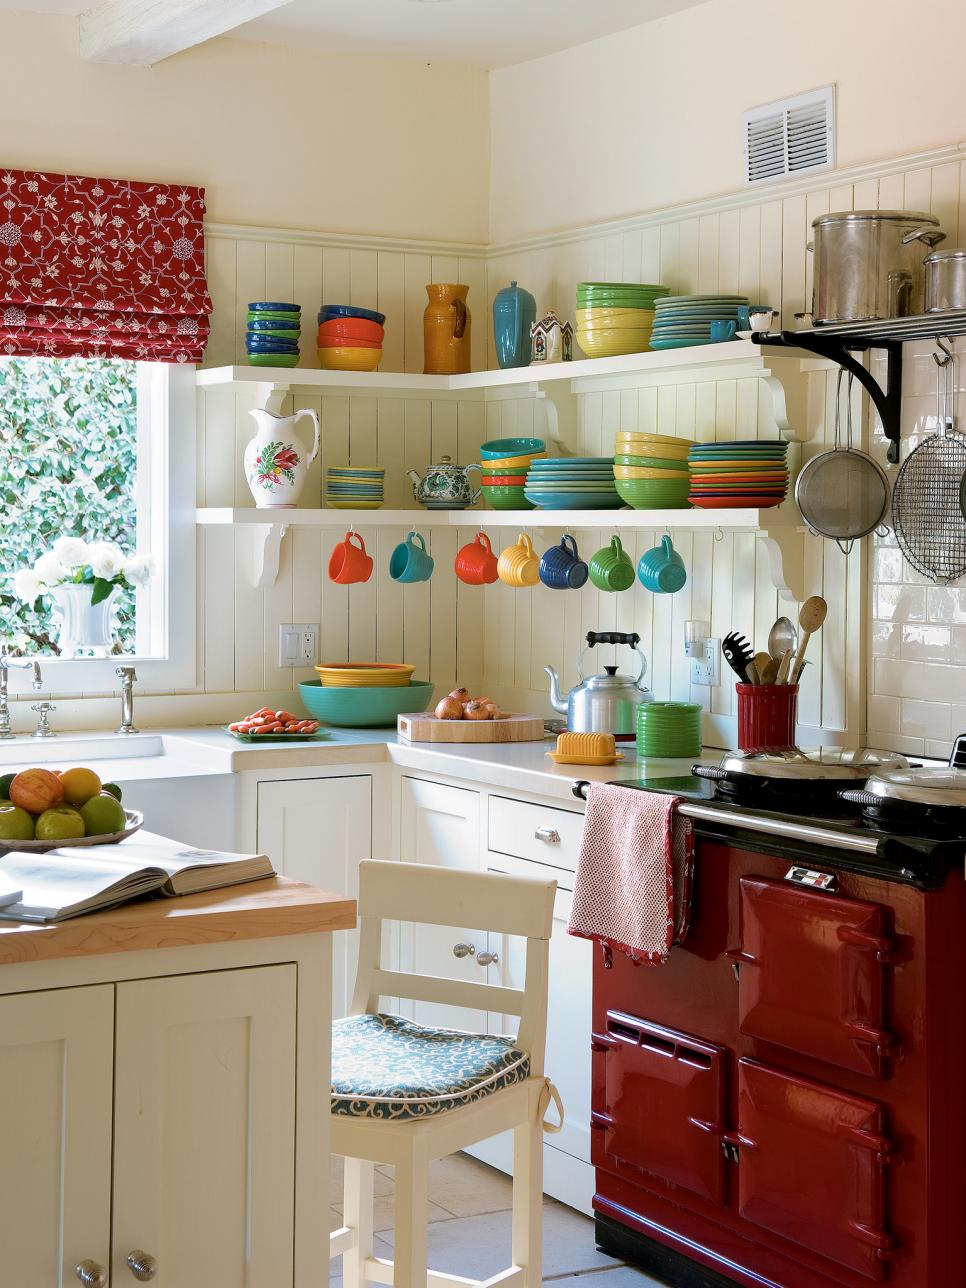 Colorful ceramic dishes kitchen